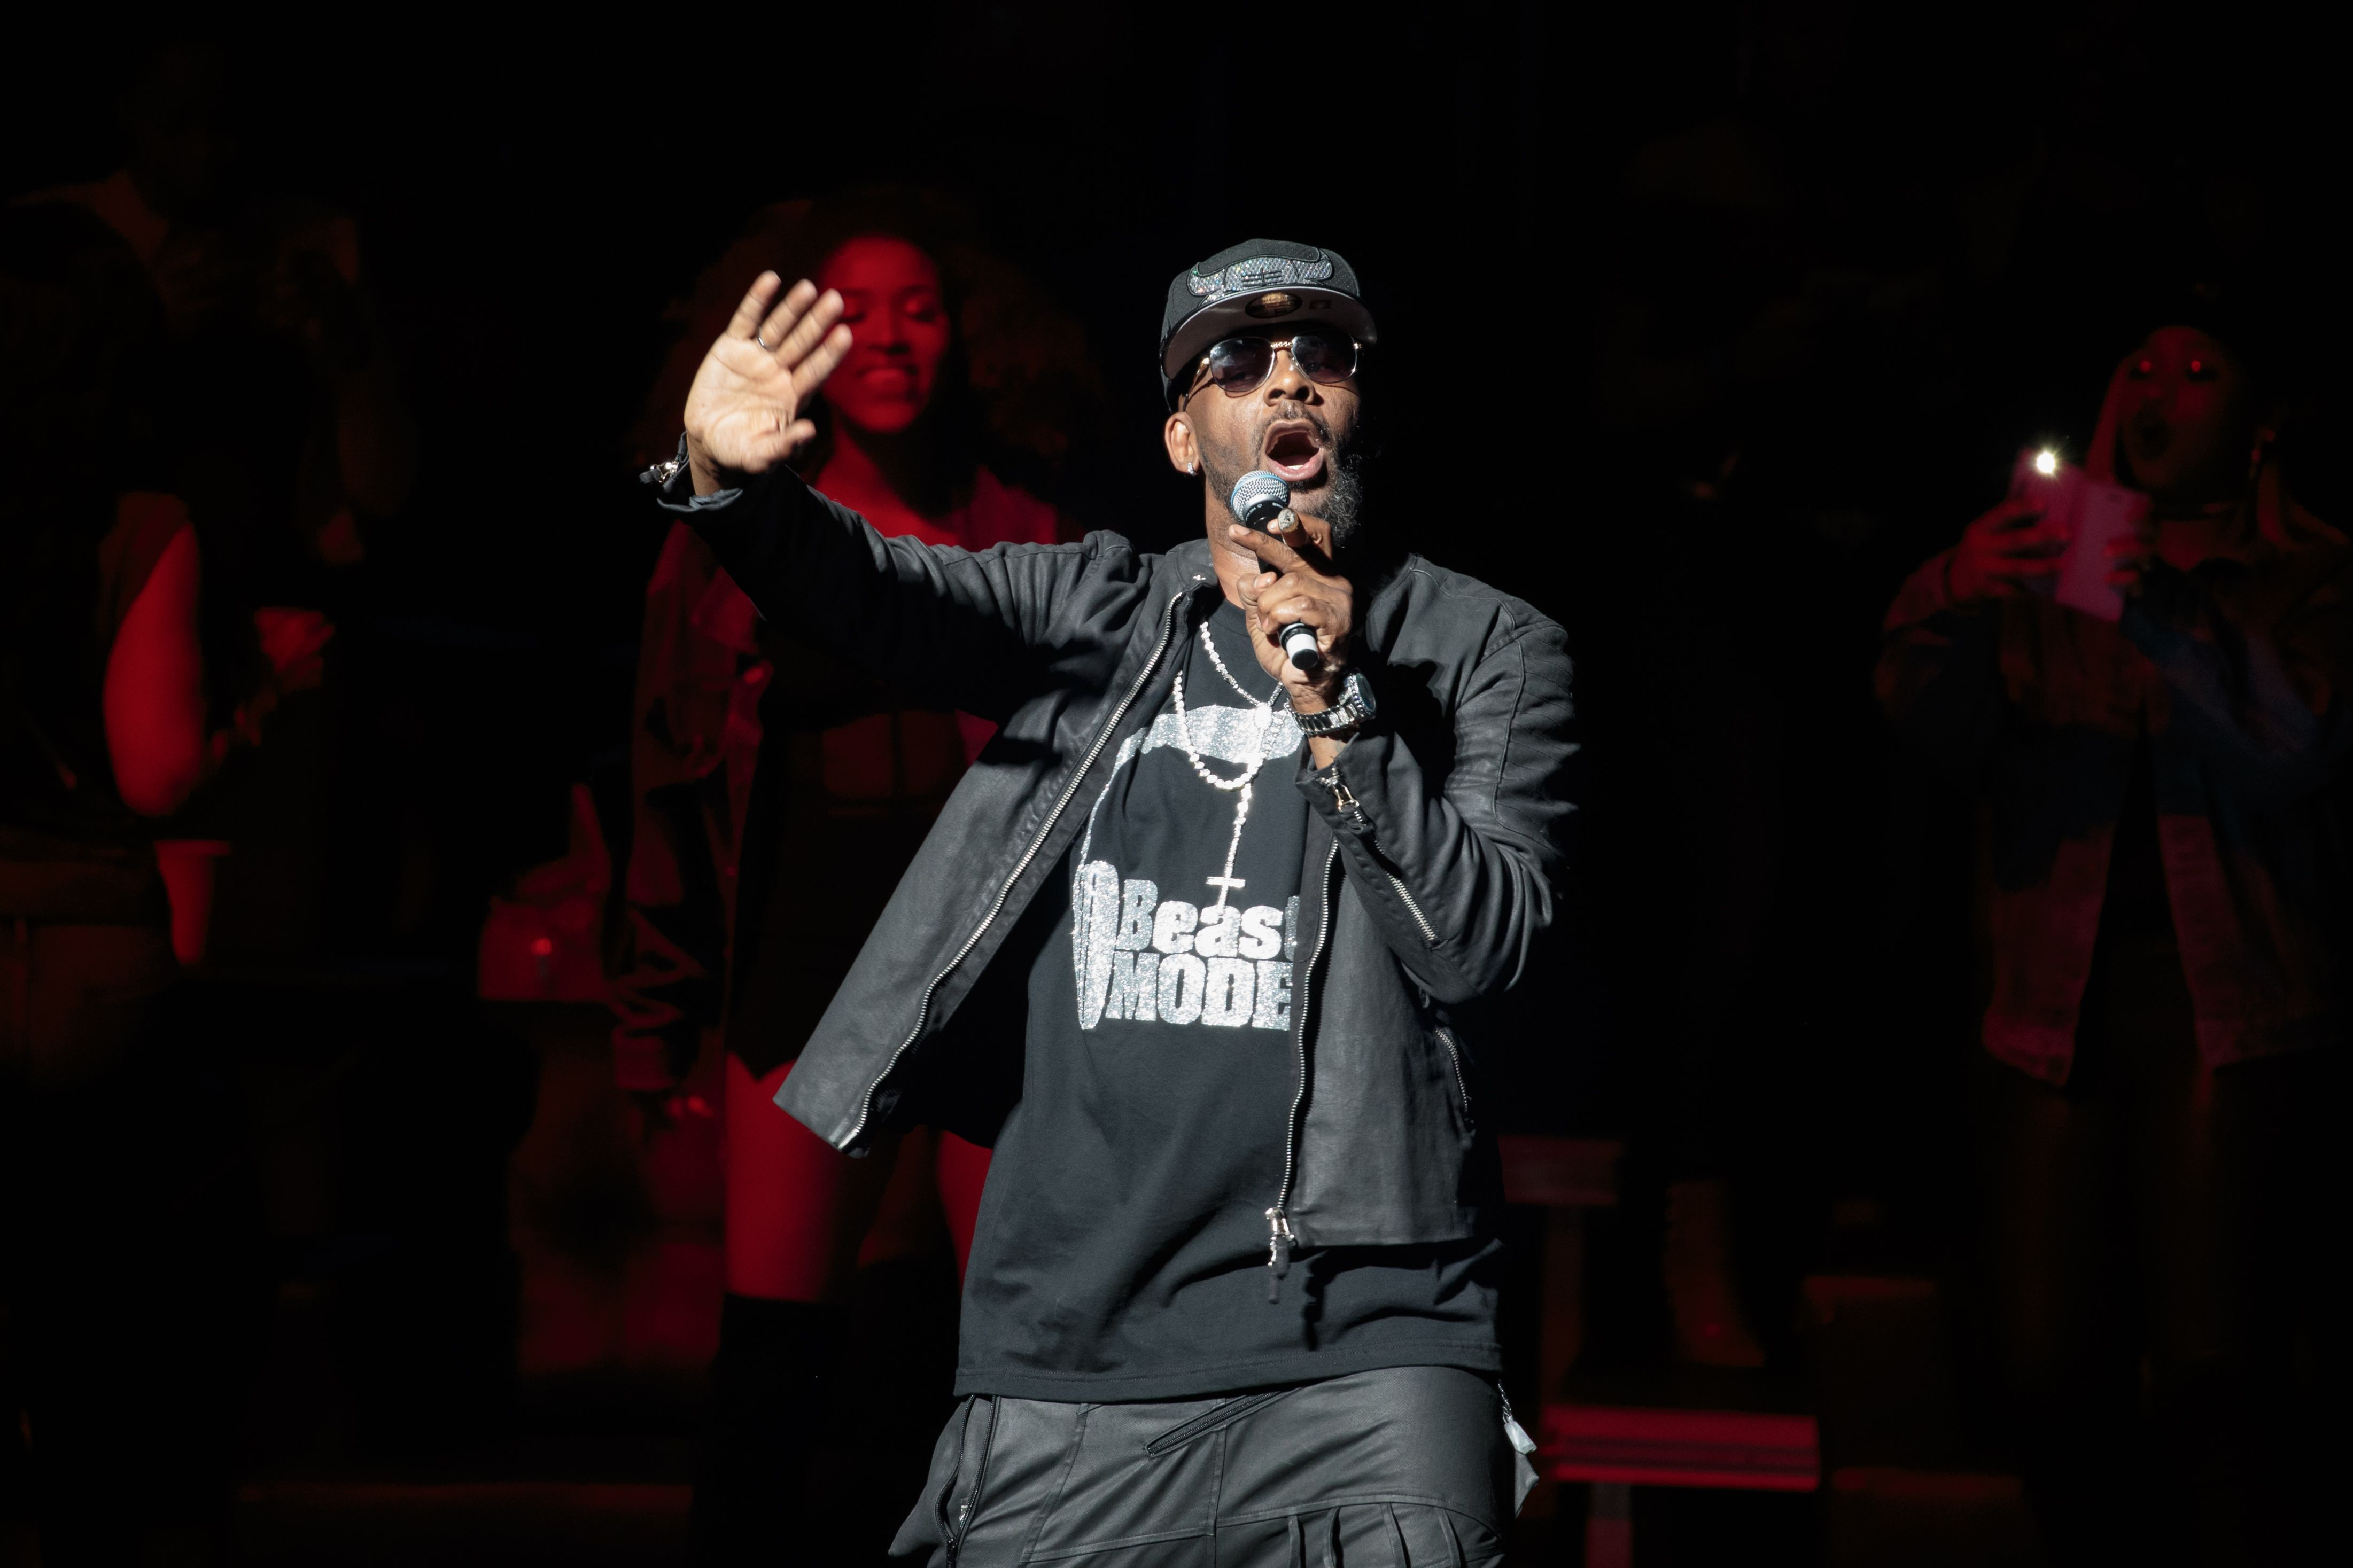 Illinois Officials Reject Permit for R. Kelly-Headlined Music Festival